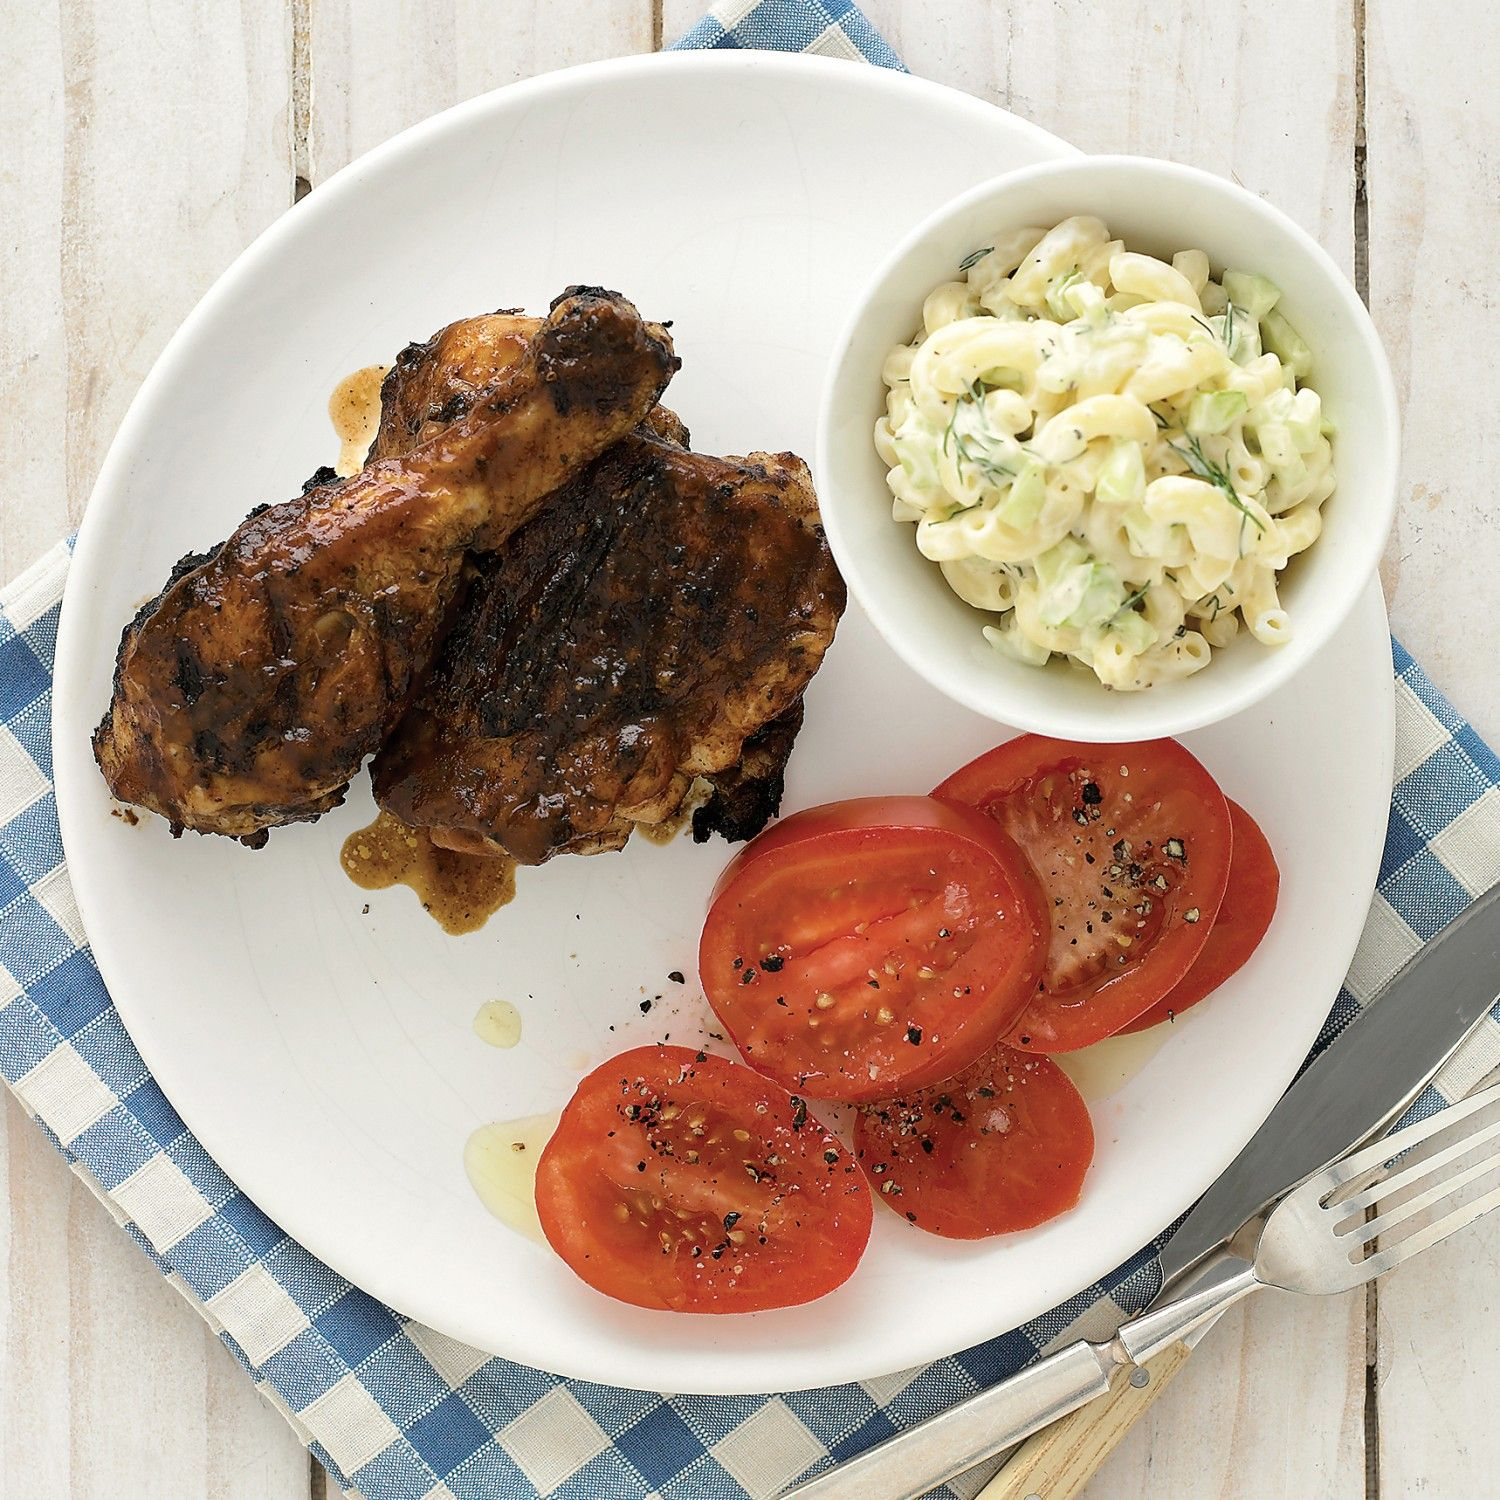 Head for Dixieland with two jazzy standbys: spicy-sweet chicken and creamy macaroni salad.